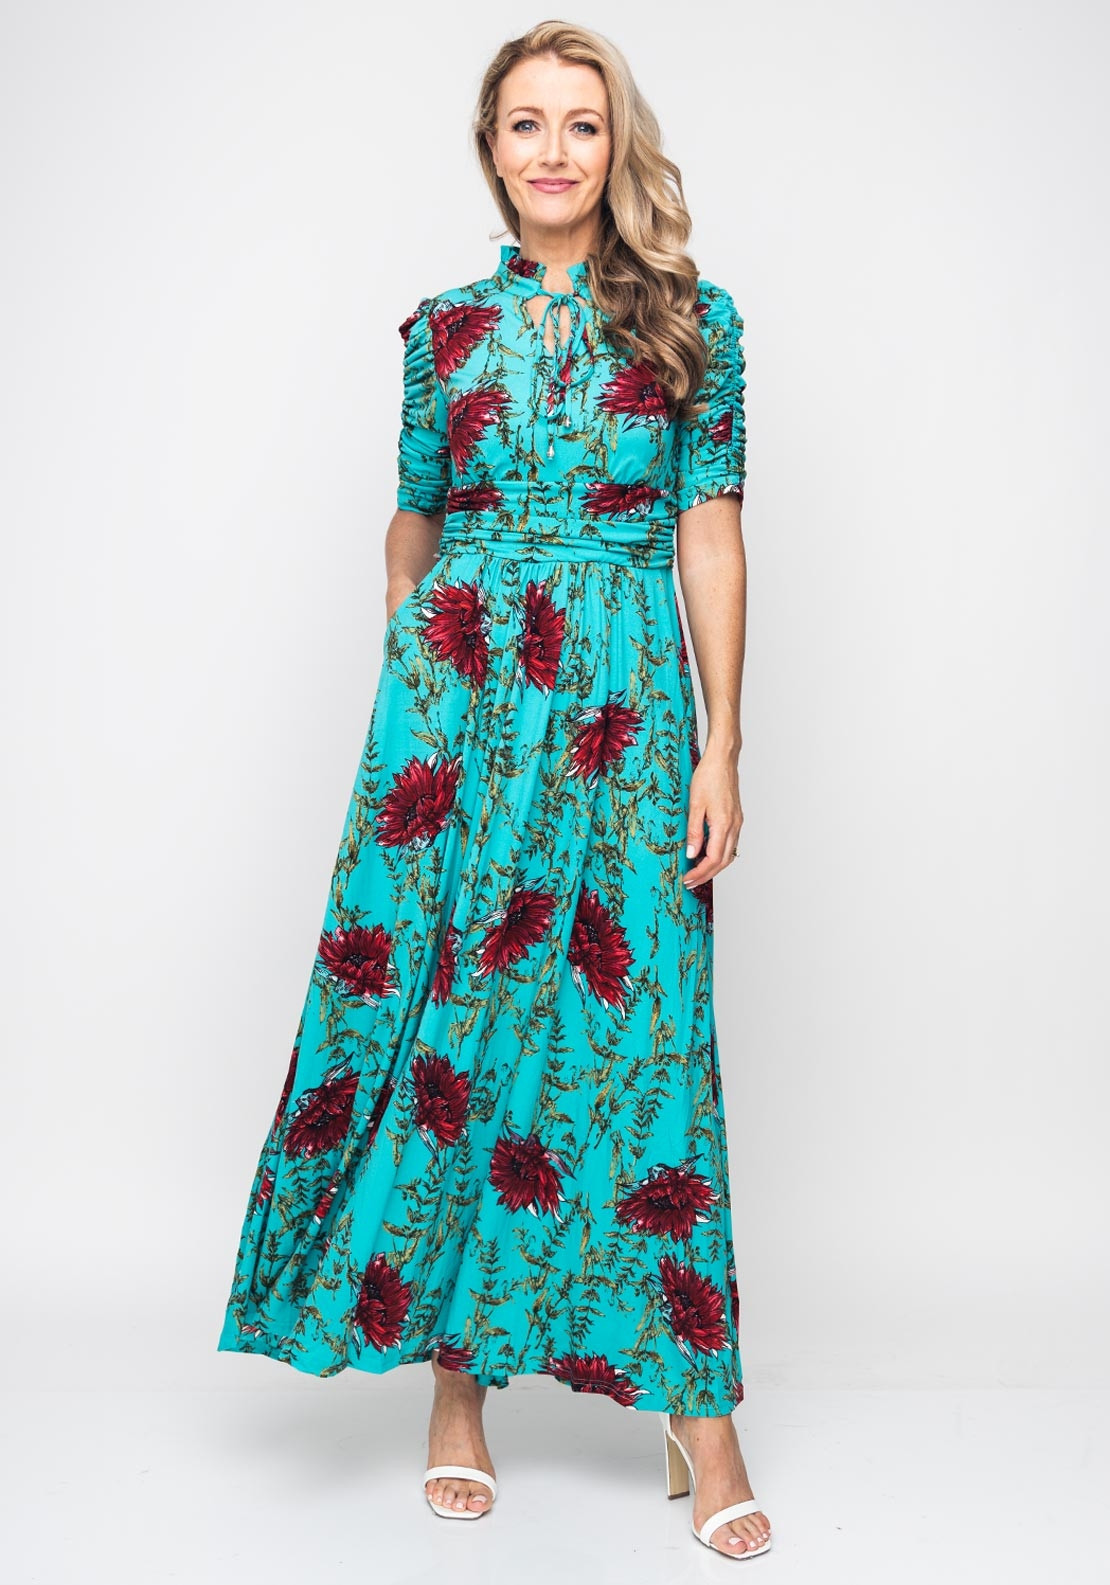 5dbcc4445d Jolie Moi Floral Tie Collar Maxi Dress, Turquoise. Be the first to review  this product